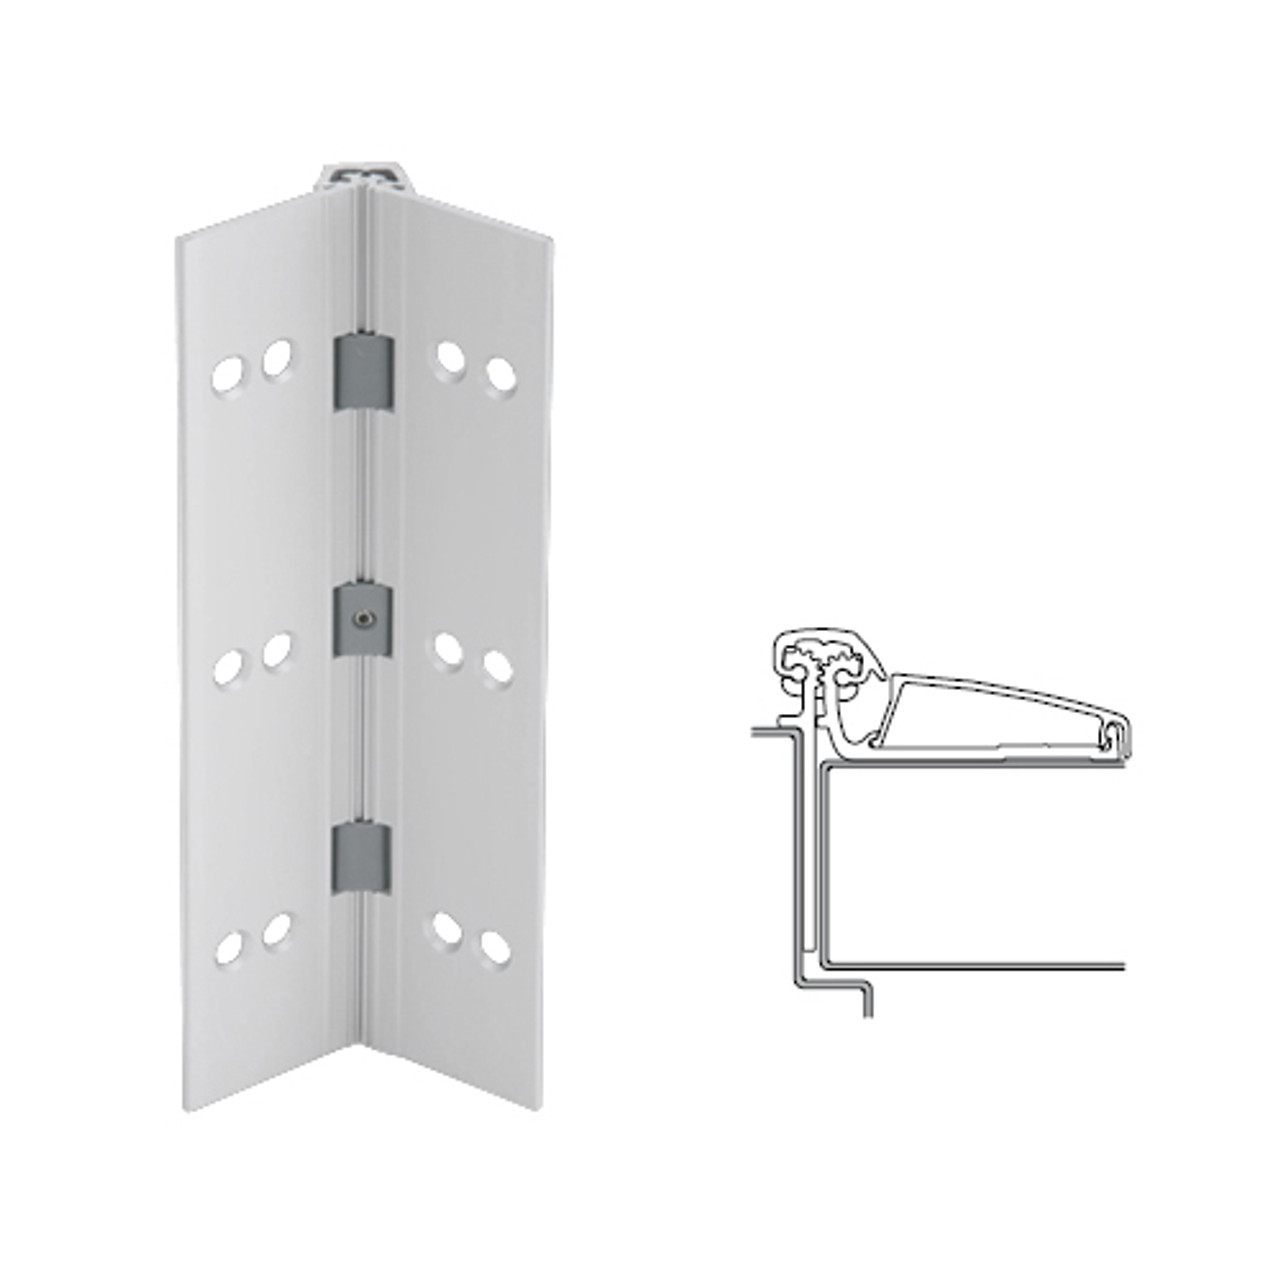 046XY-US28-83-TFWD IVES Adjustable Half Surface Continuous Geared Hinges with Thread Forming Screws in Satin Aluminum